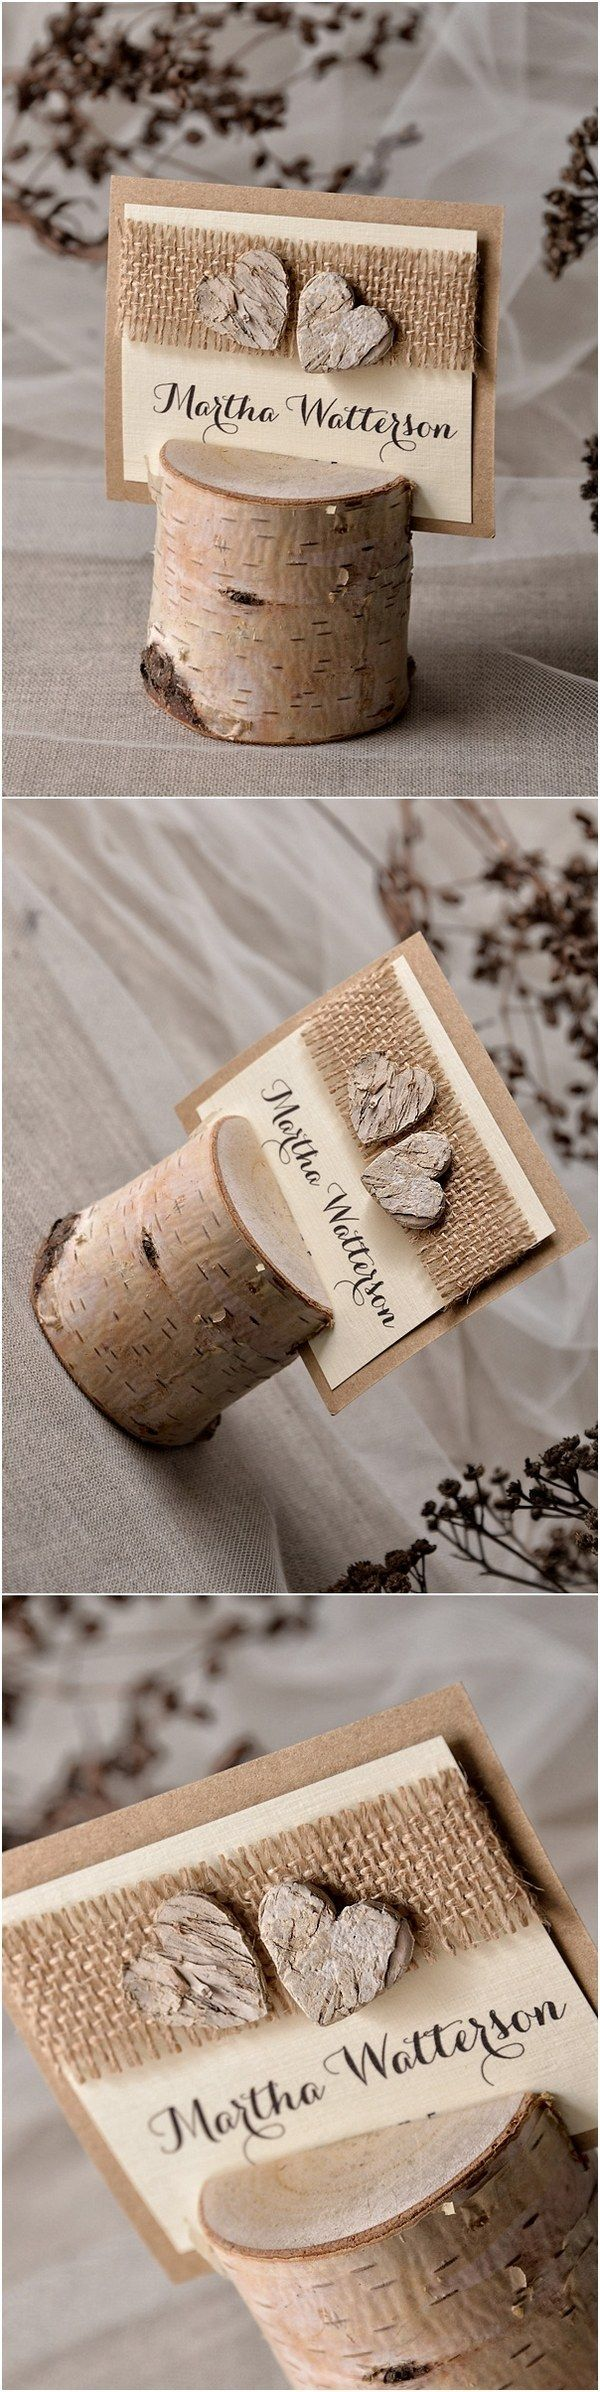 Rustic Wedding Rustic country burlap and birch real wood wedding place cards #countrywedding #rusticwedding #dpf